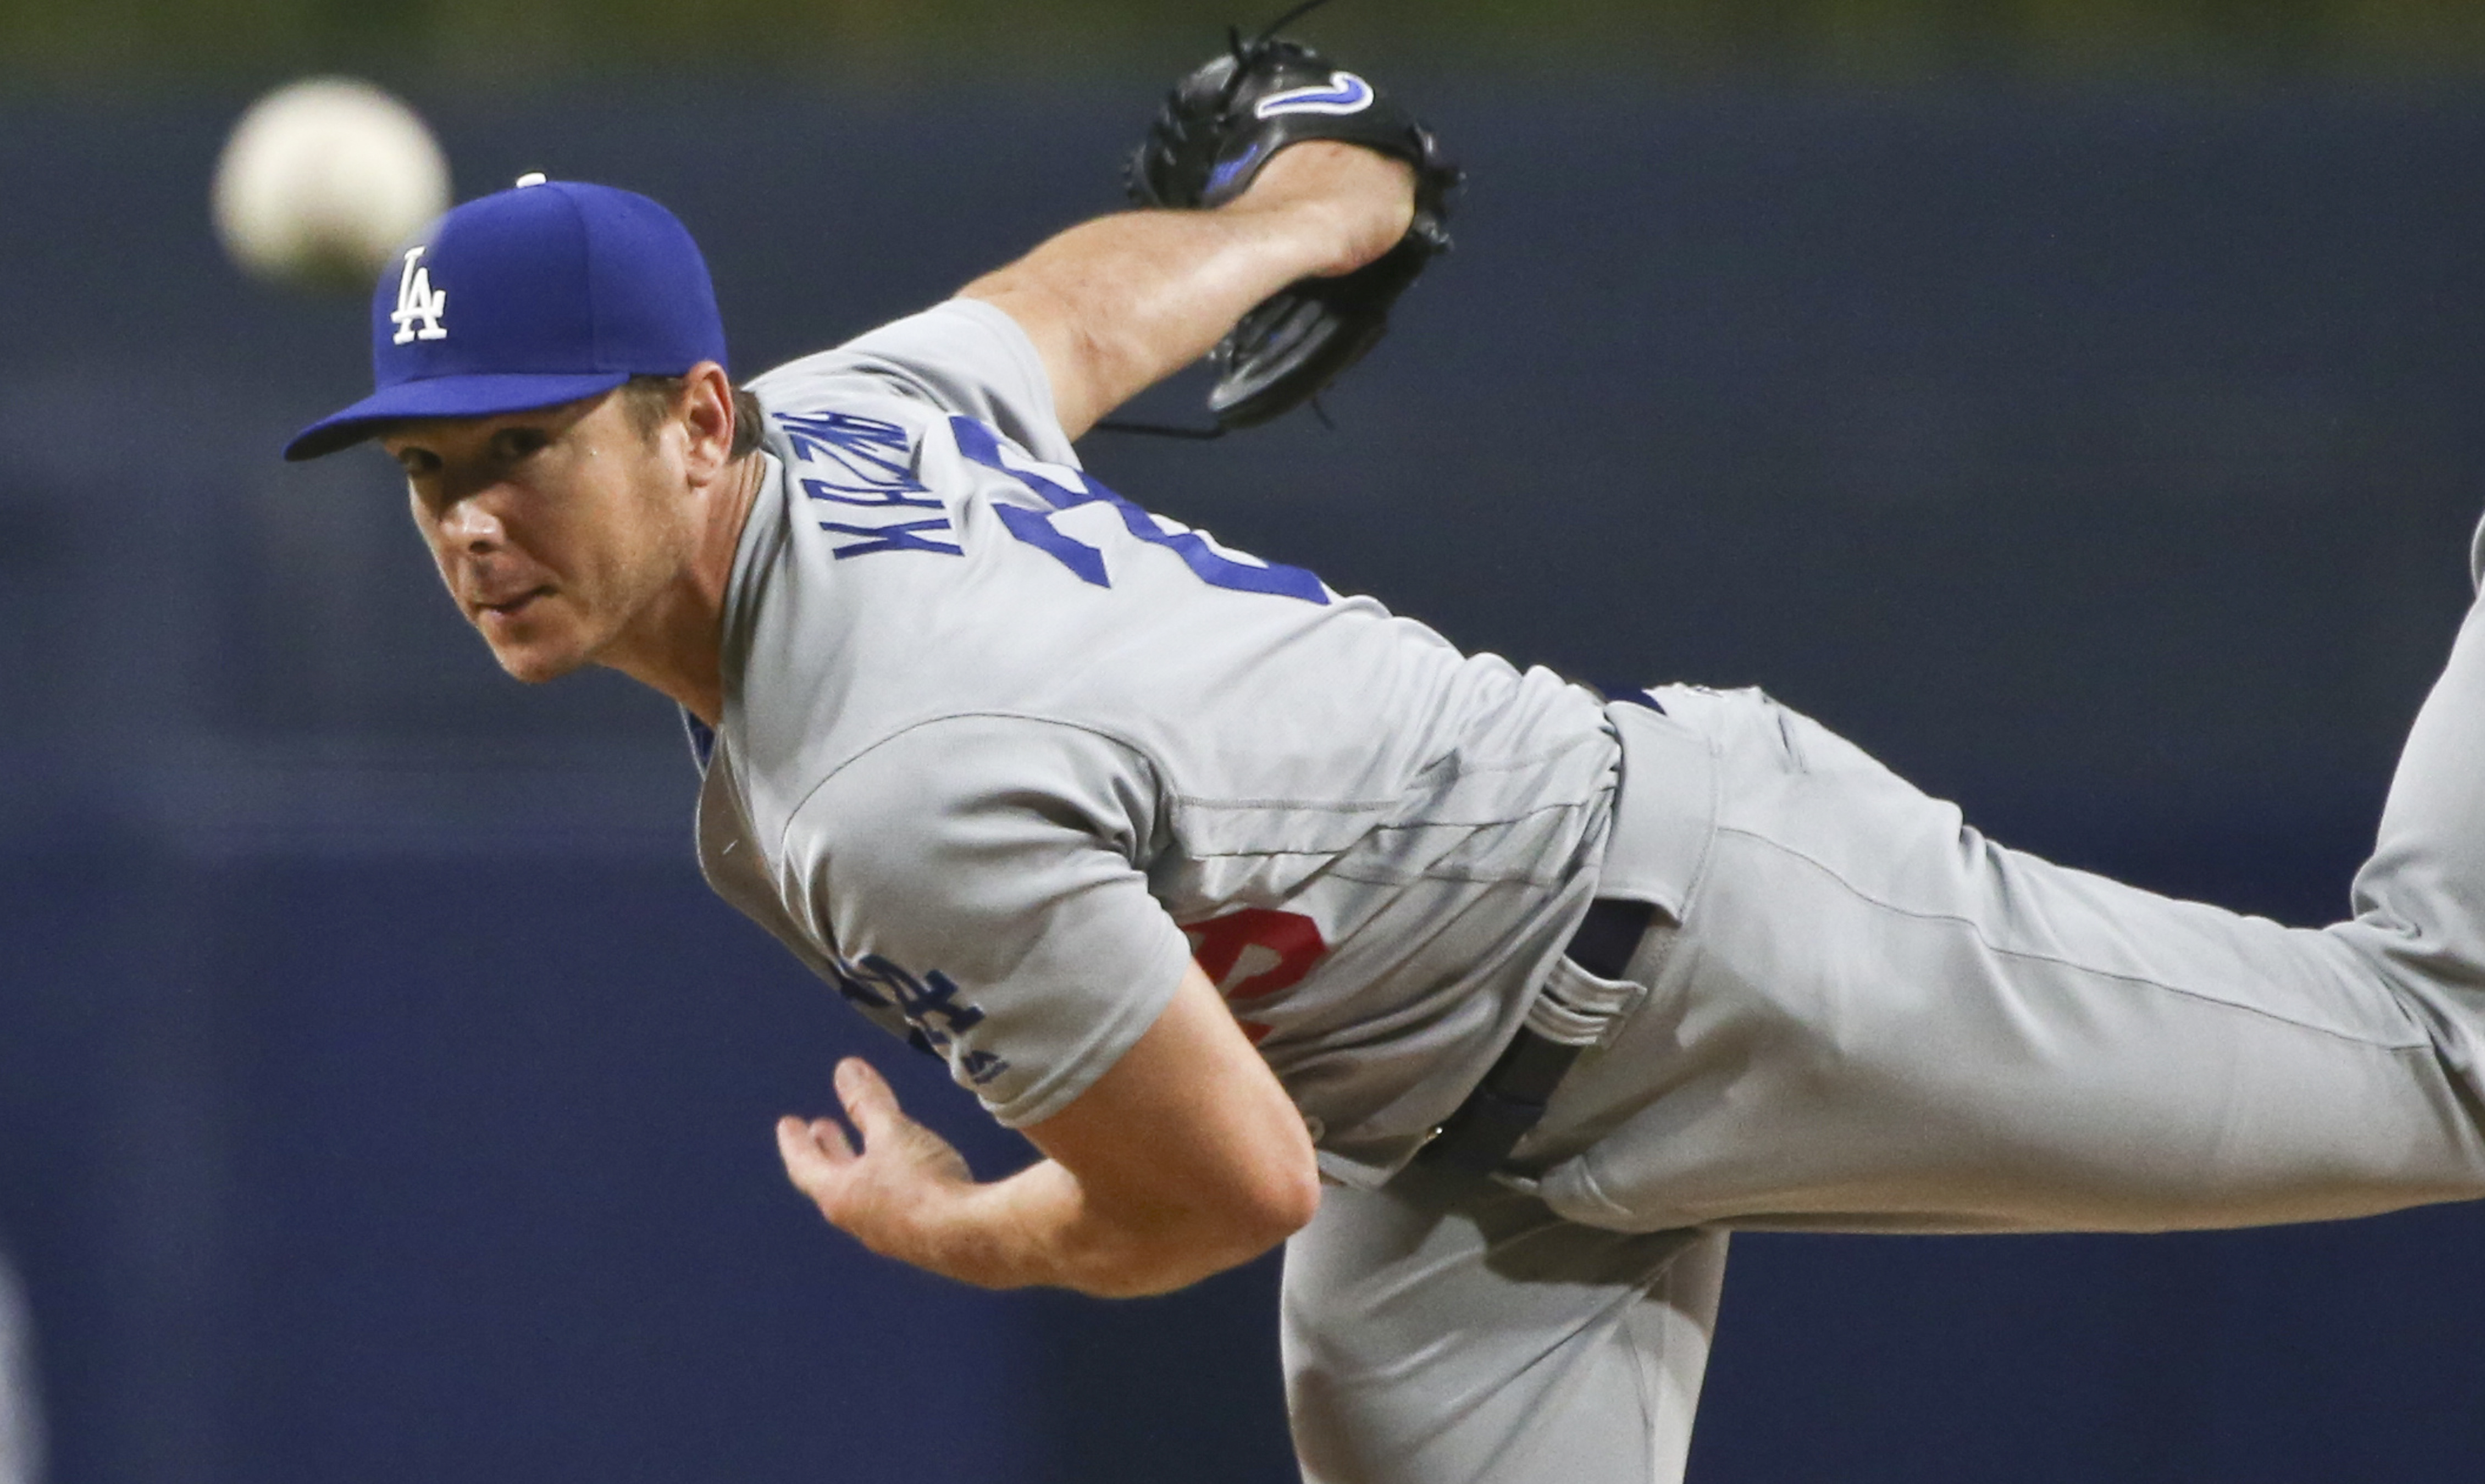 Los Angeles Dodgers starting pitcher Scott Kazmir works against the San Diego Padres during the first inning of a baseball game Tuesday, April 5, 2016, in San Diego. (AP Photo/Lenny Ignelzi)